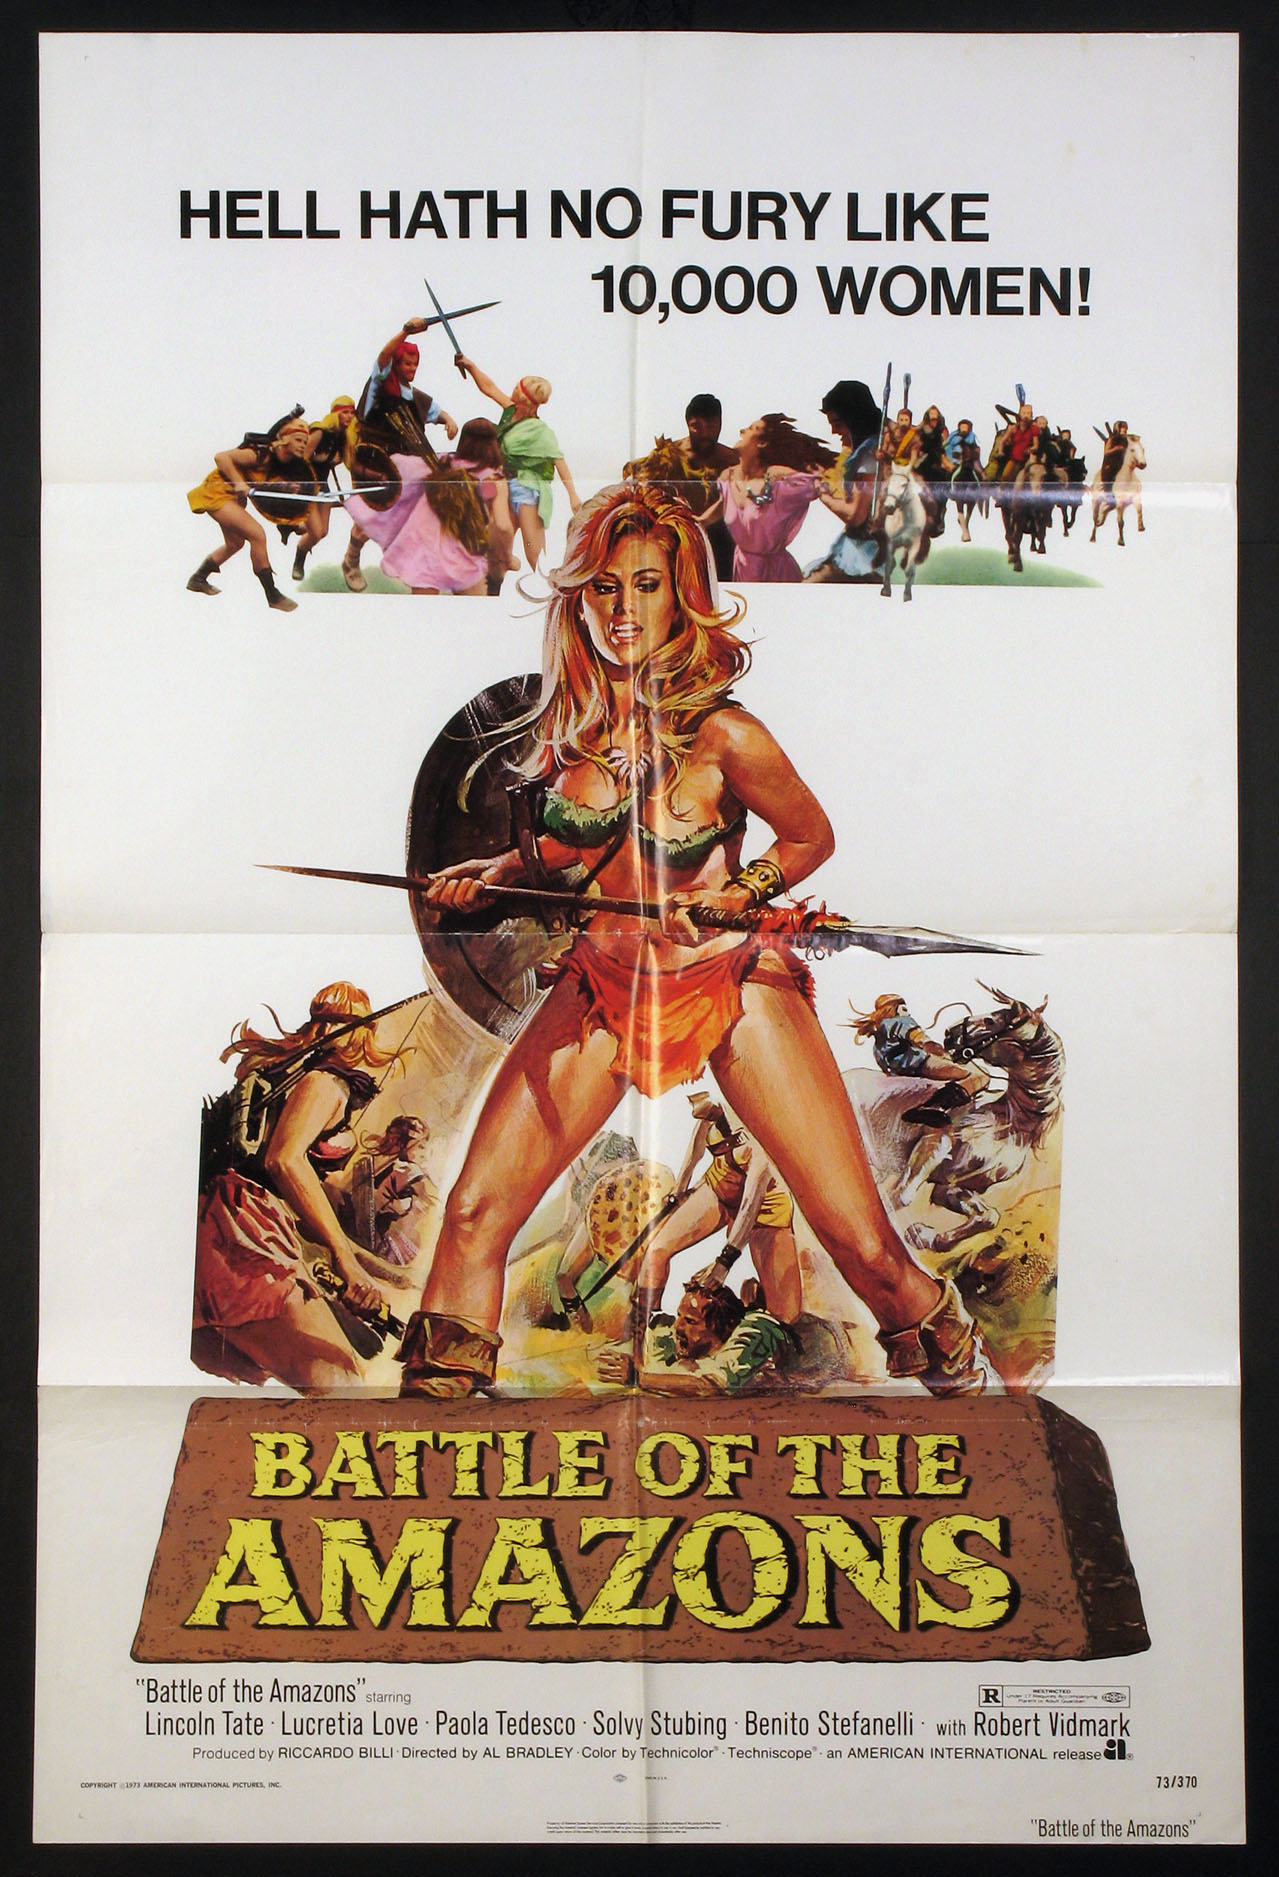 BATTLE OF THE AMAZONS @ FilmPosters.com